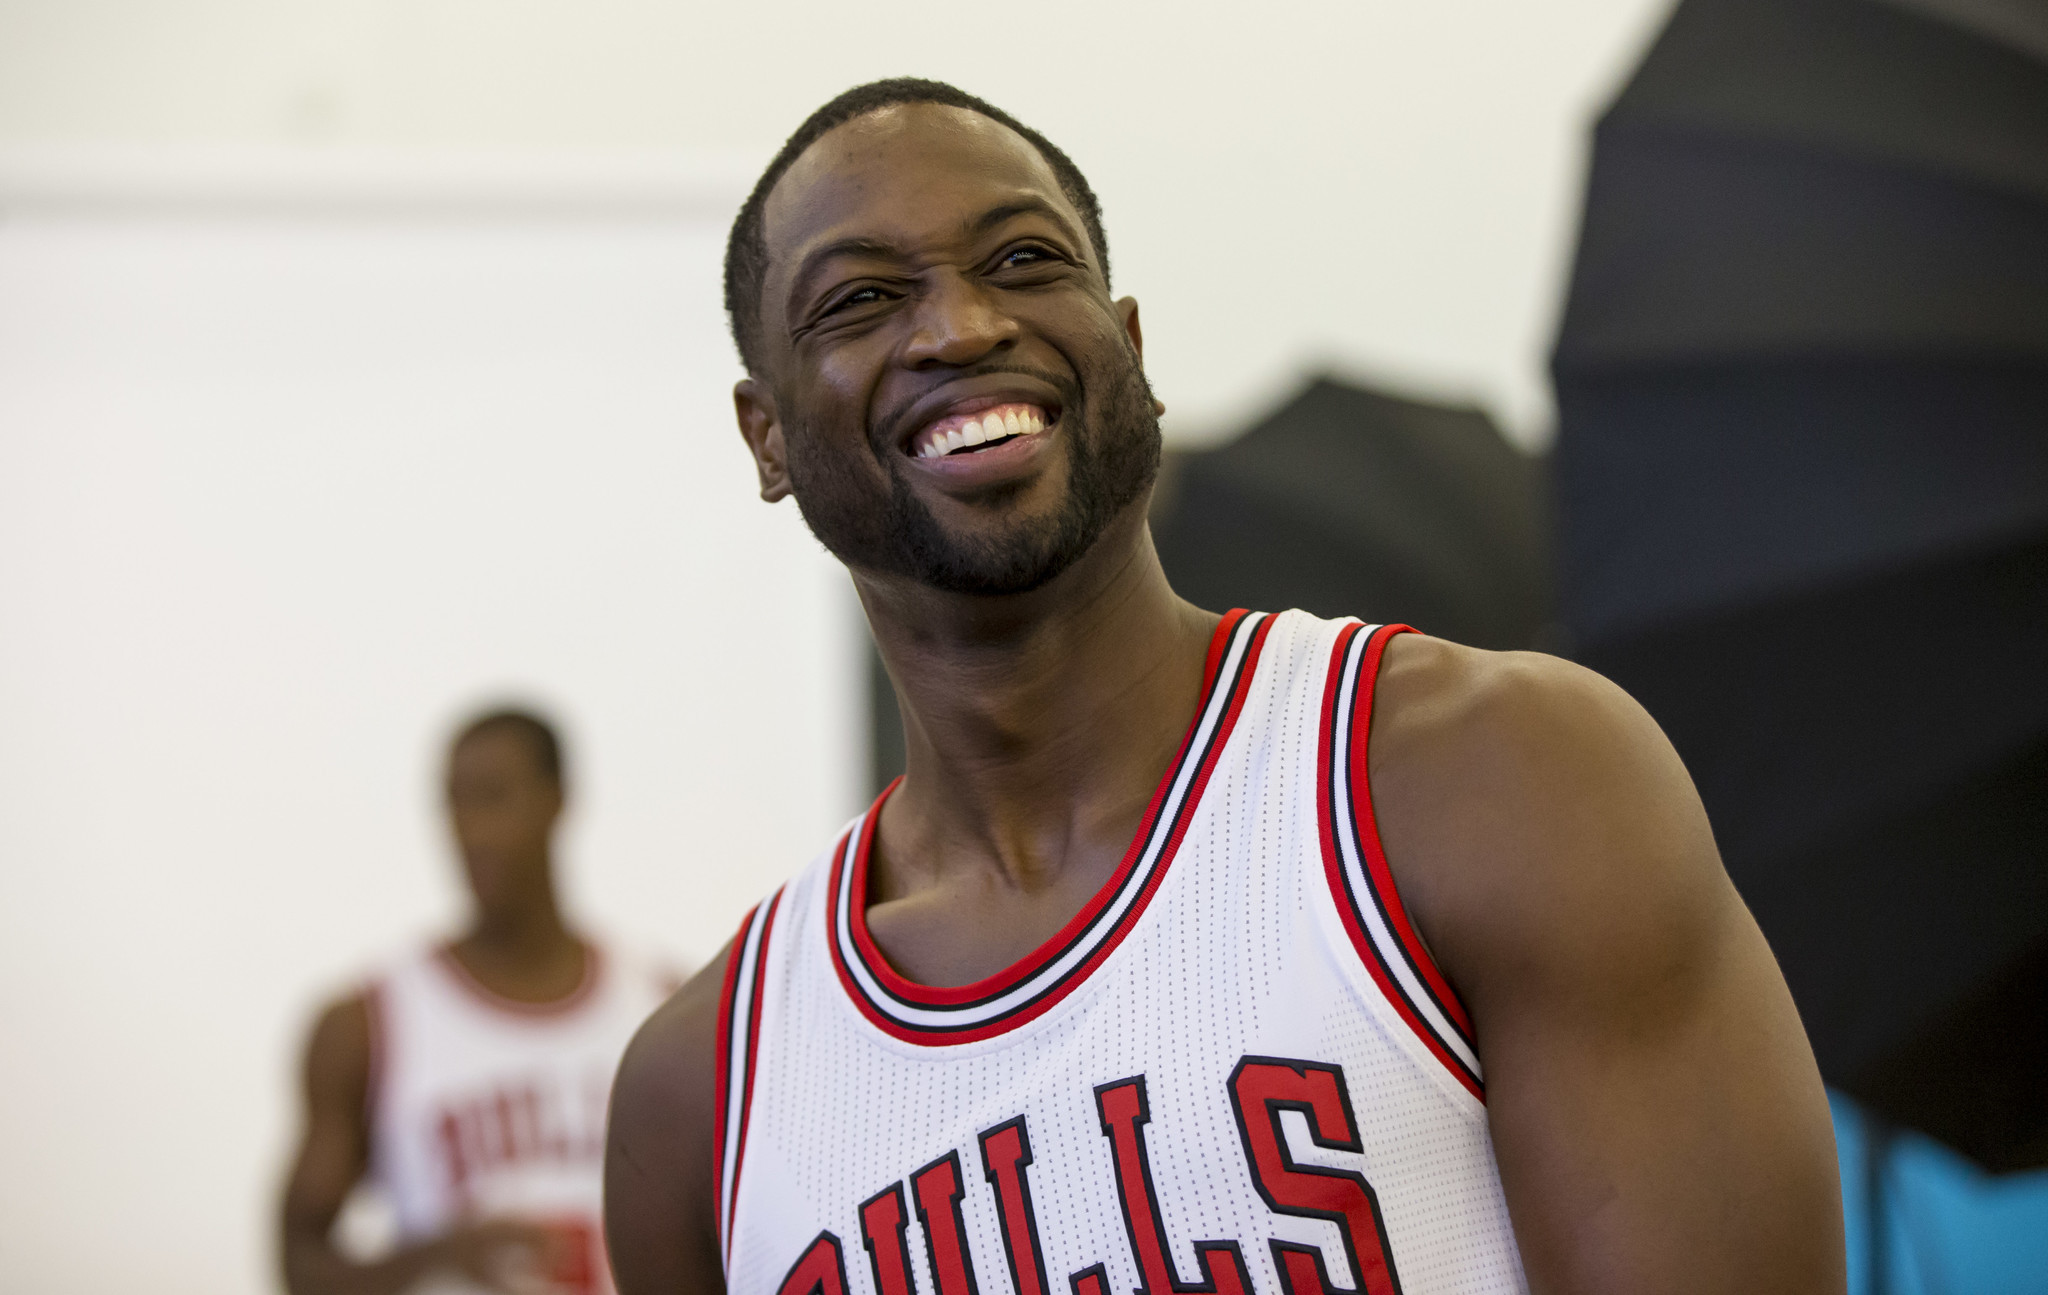 Dwyane Wade prepares to start season with Bulls My plan is to be